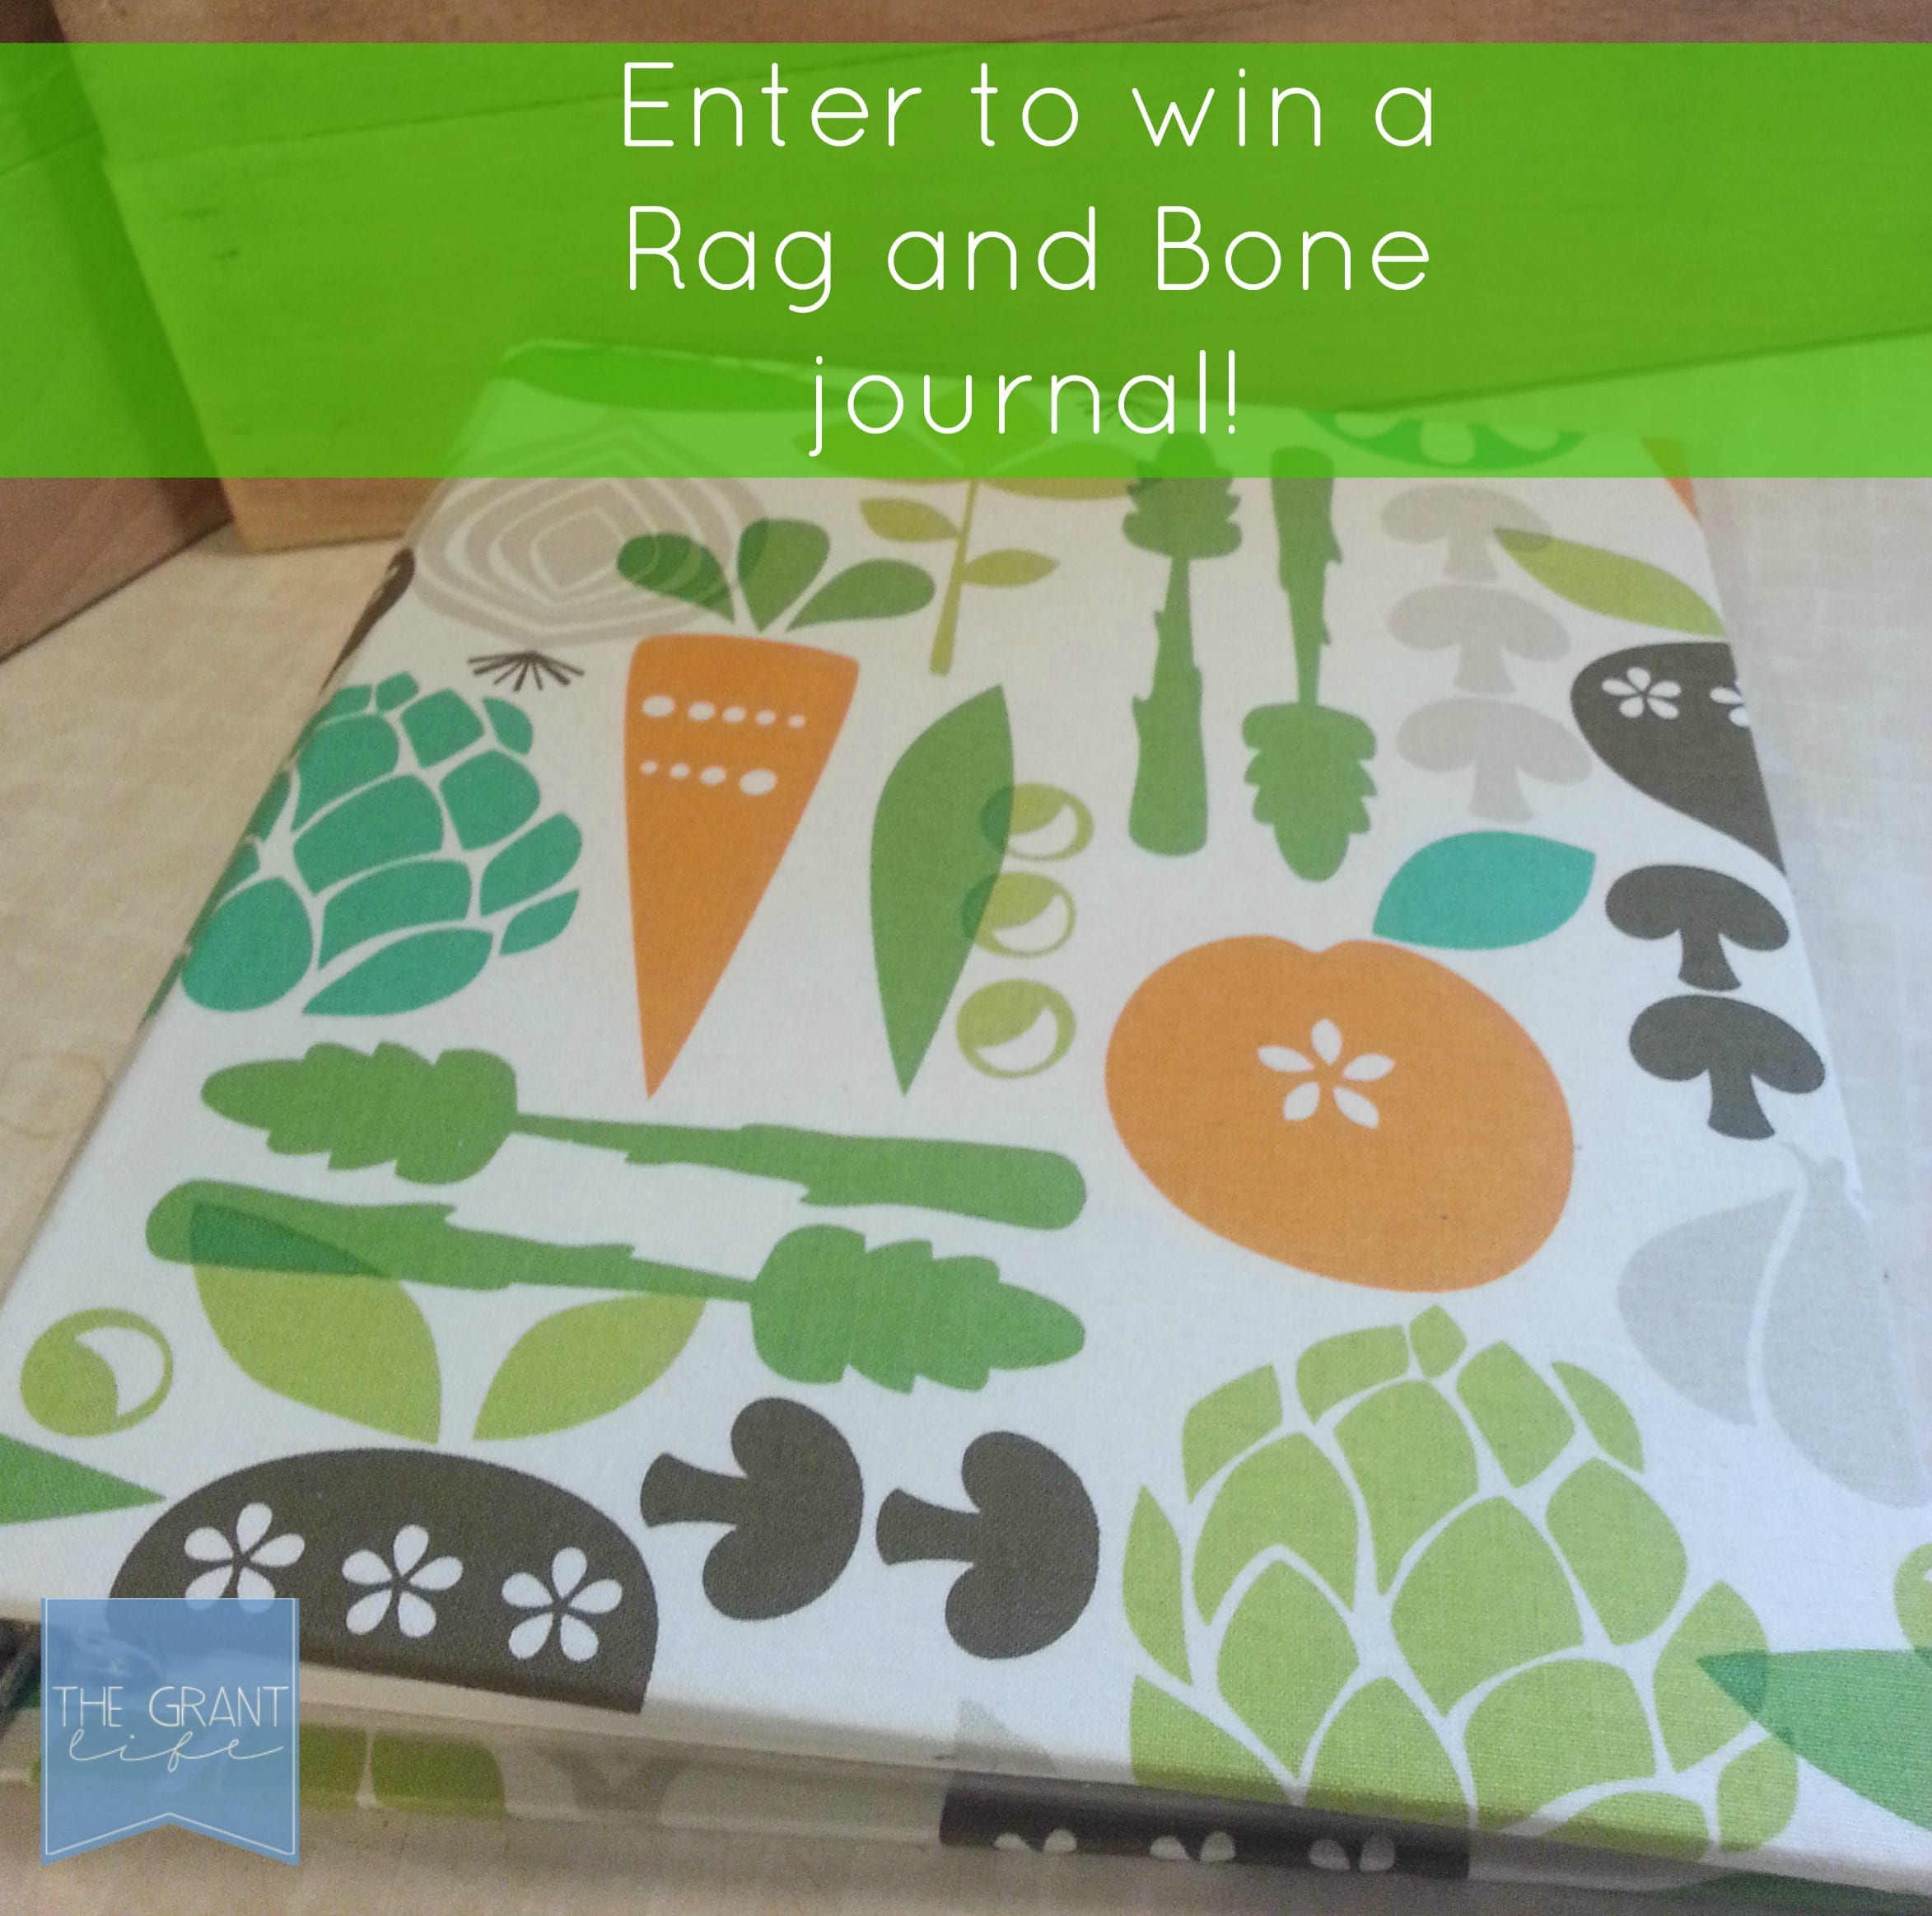 Enter to win a rag and bone journal